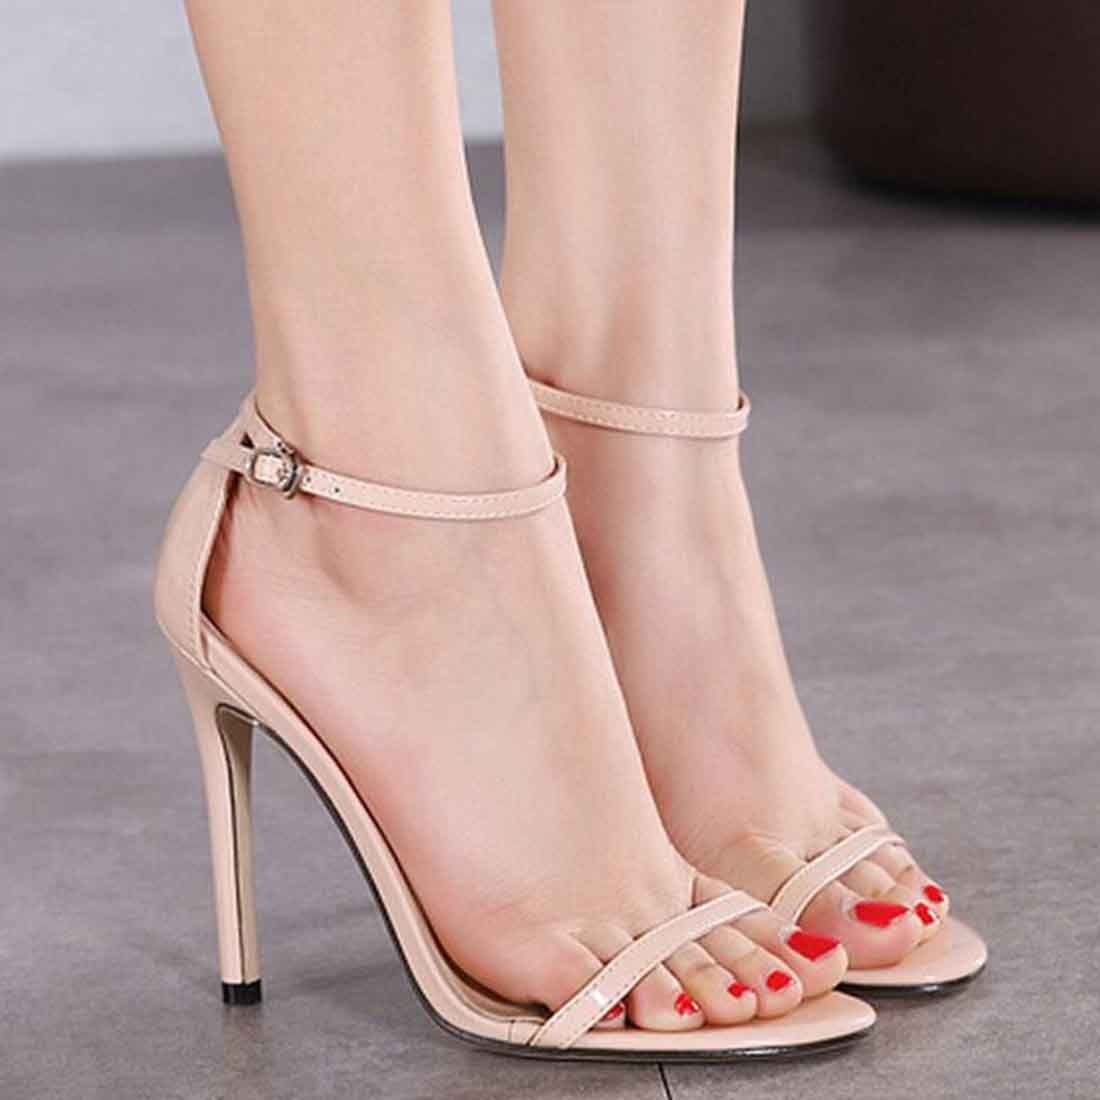 Women's Classic Patent Leather Sequin Ankle Strap Slingback Spike High Heel Sandals Dress Shoes